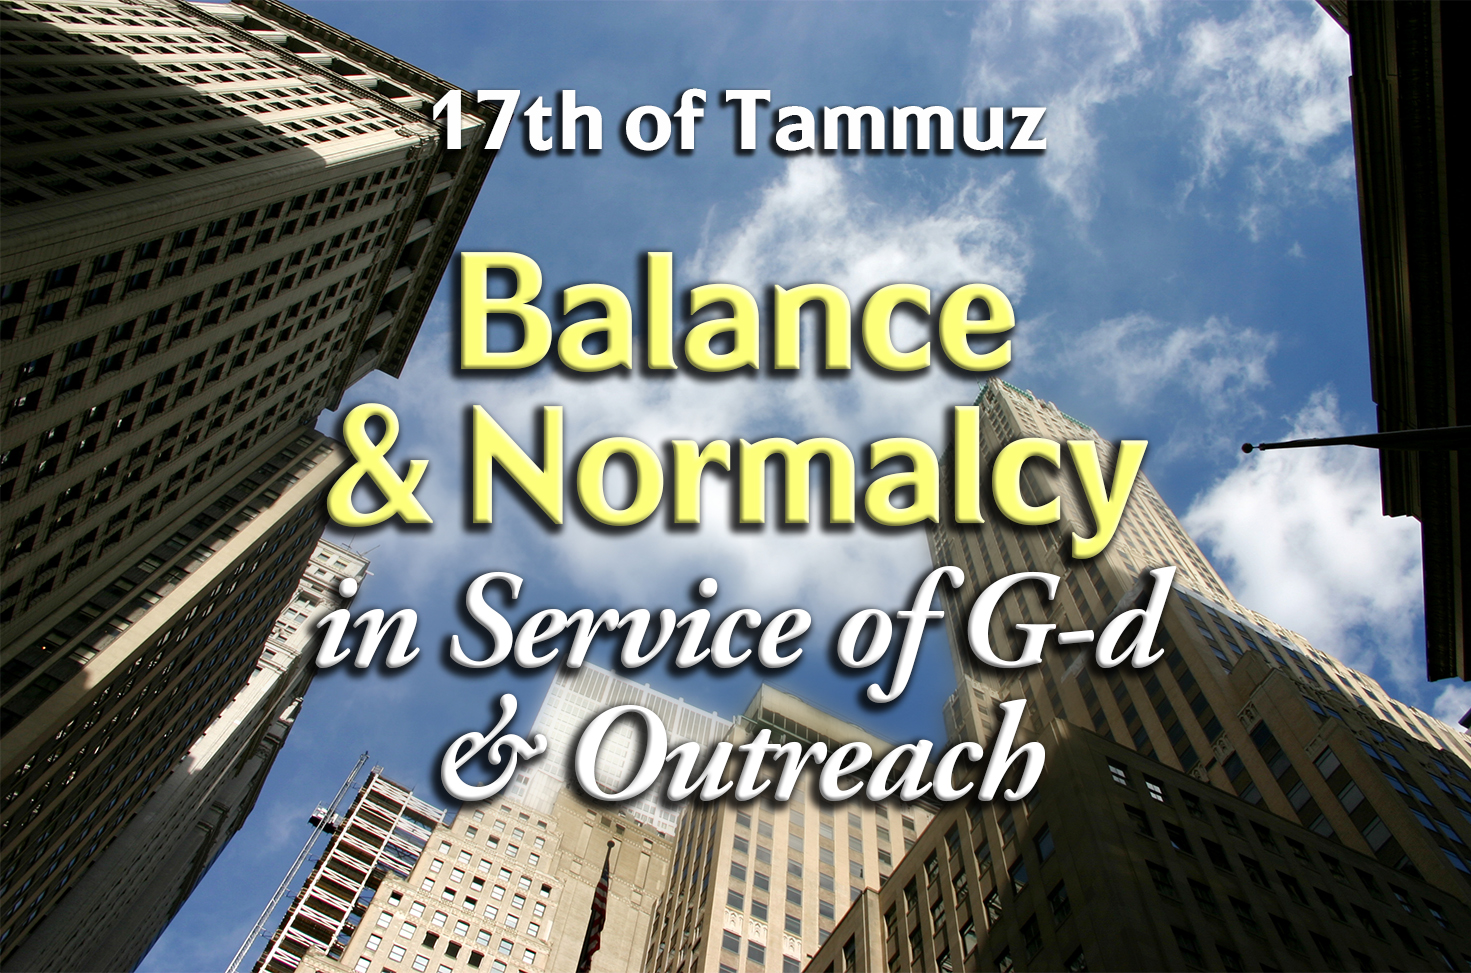 Photo of Balance & Normalcy in Service of G-d & Outreach